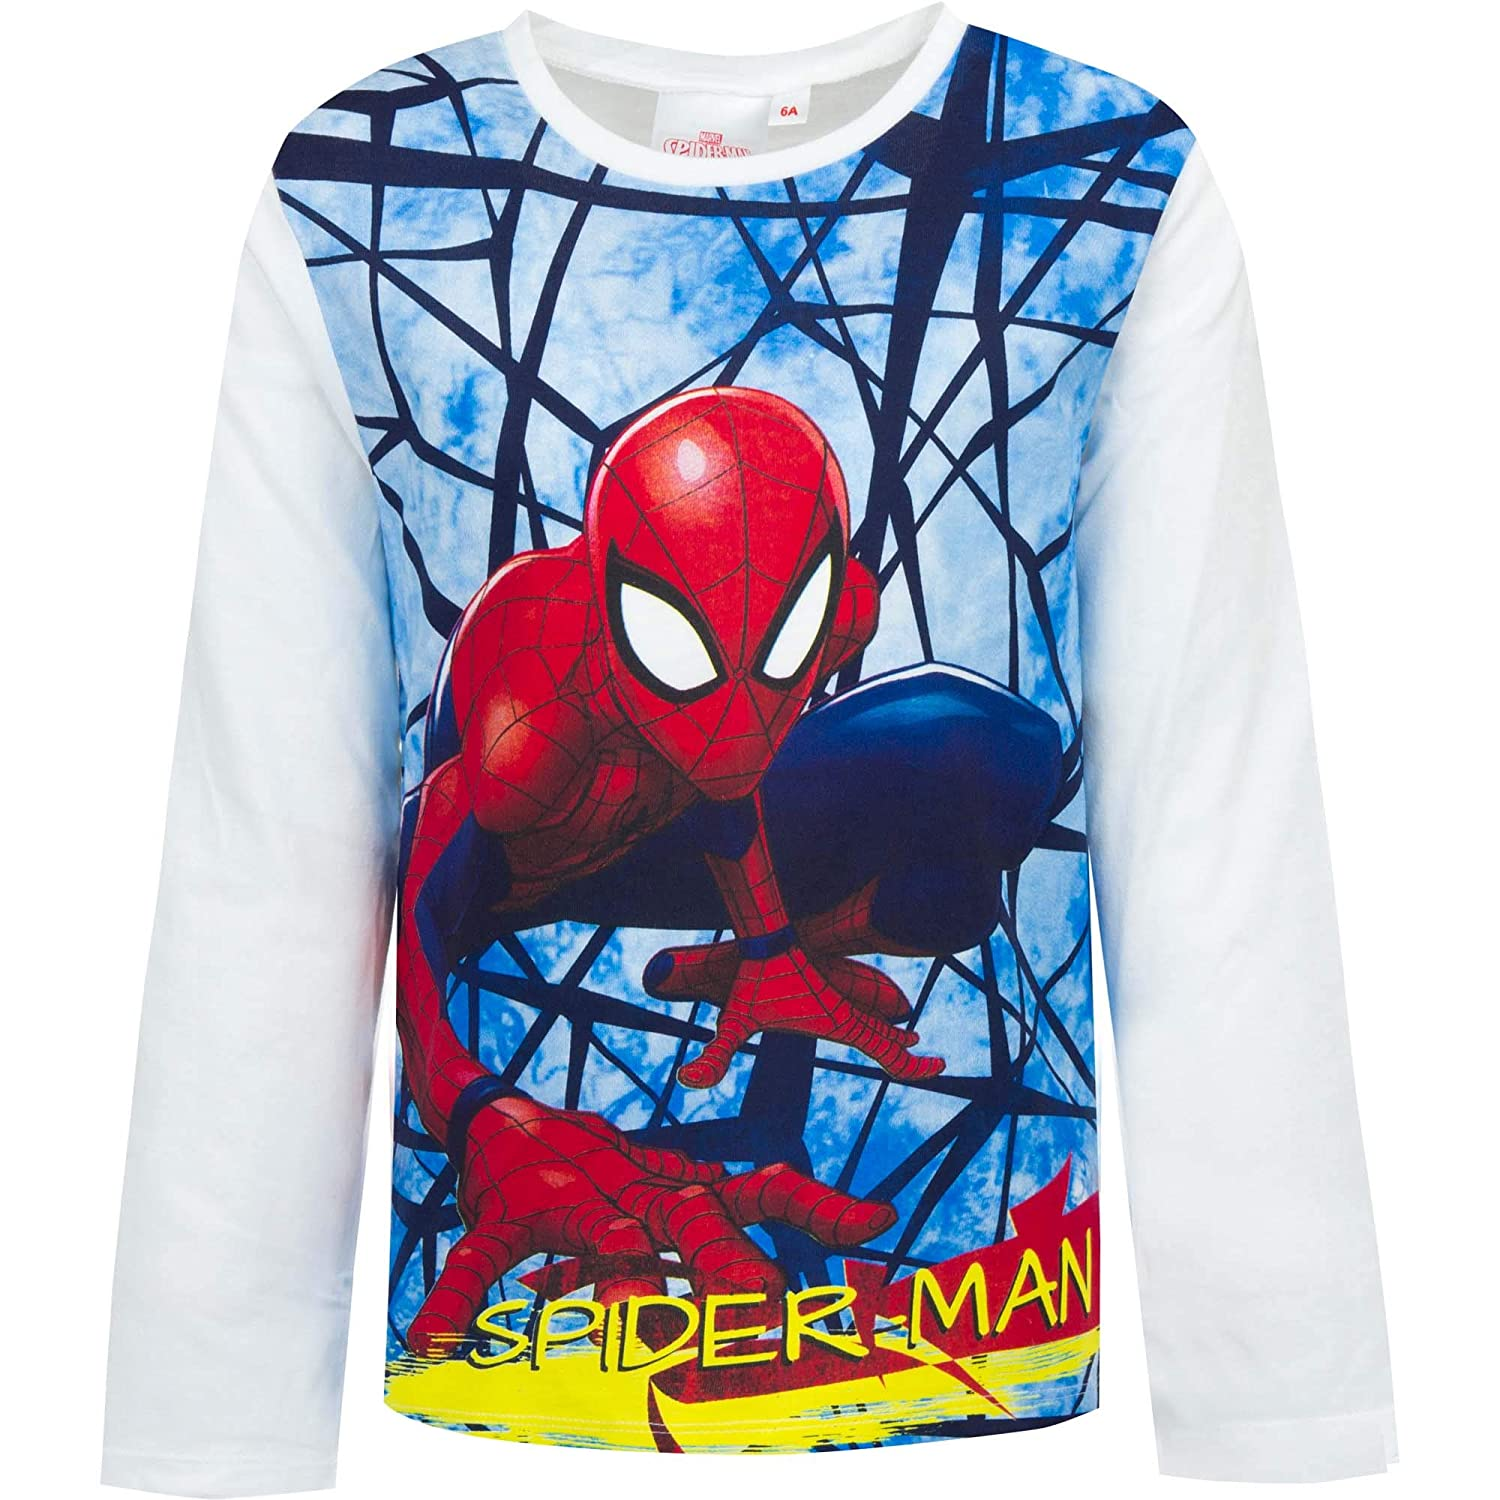 MARVEL, SPIDER-MAN New Boys Spiderman Long Sleeve TOP T-Shirt White, Size 4-8 Years